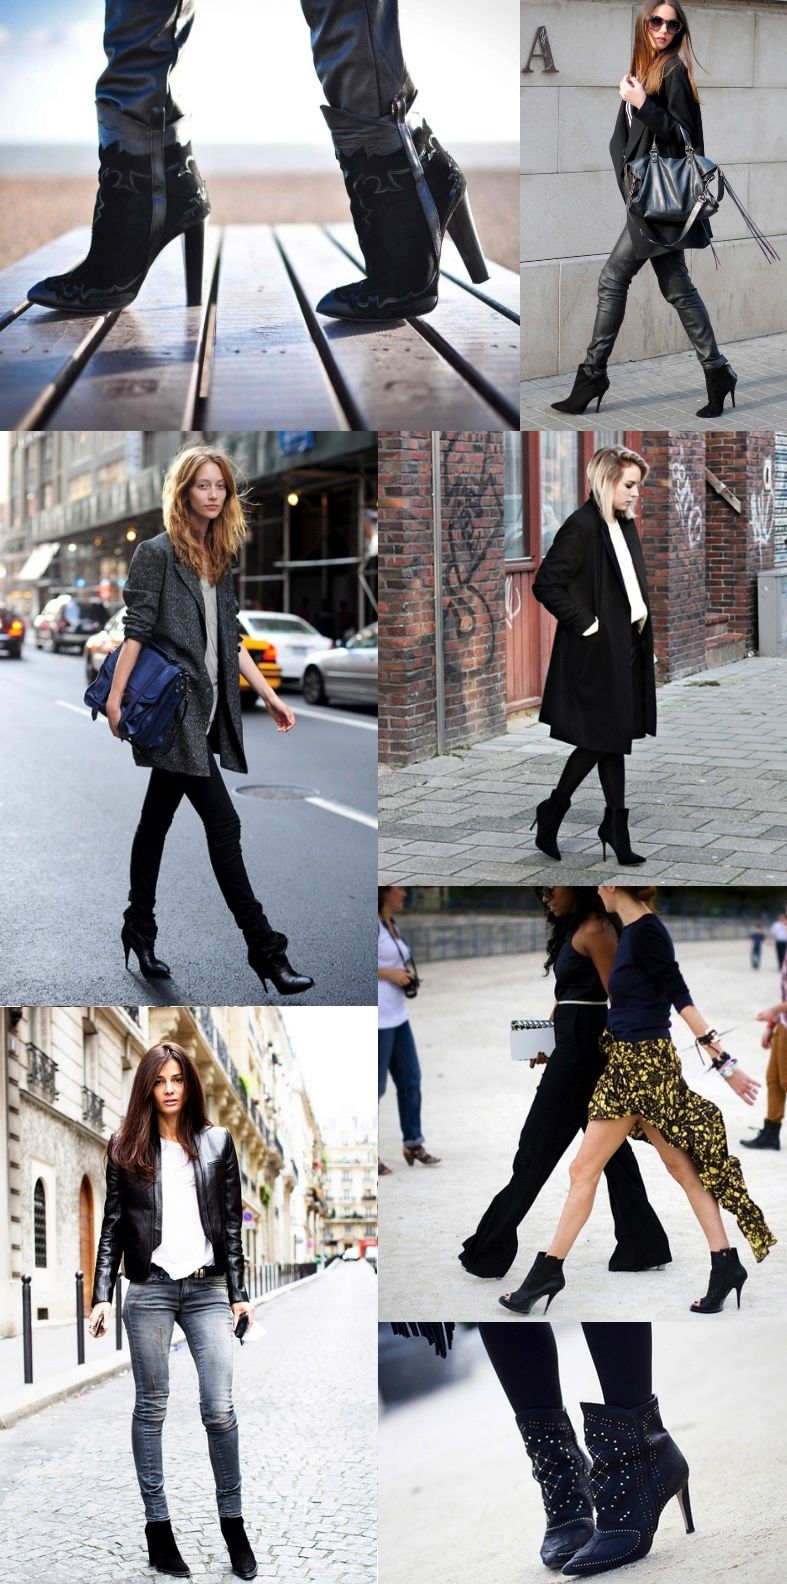 pointy black boots zara streets style